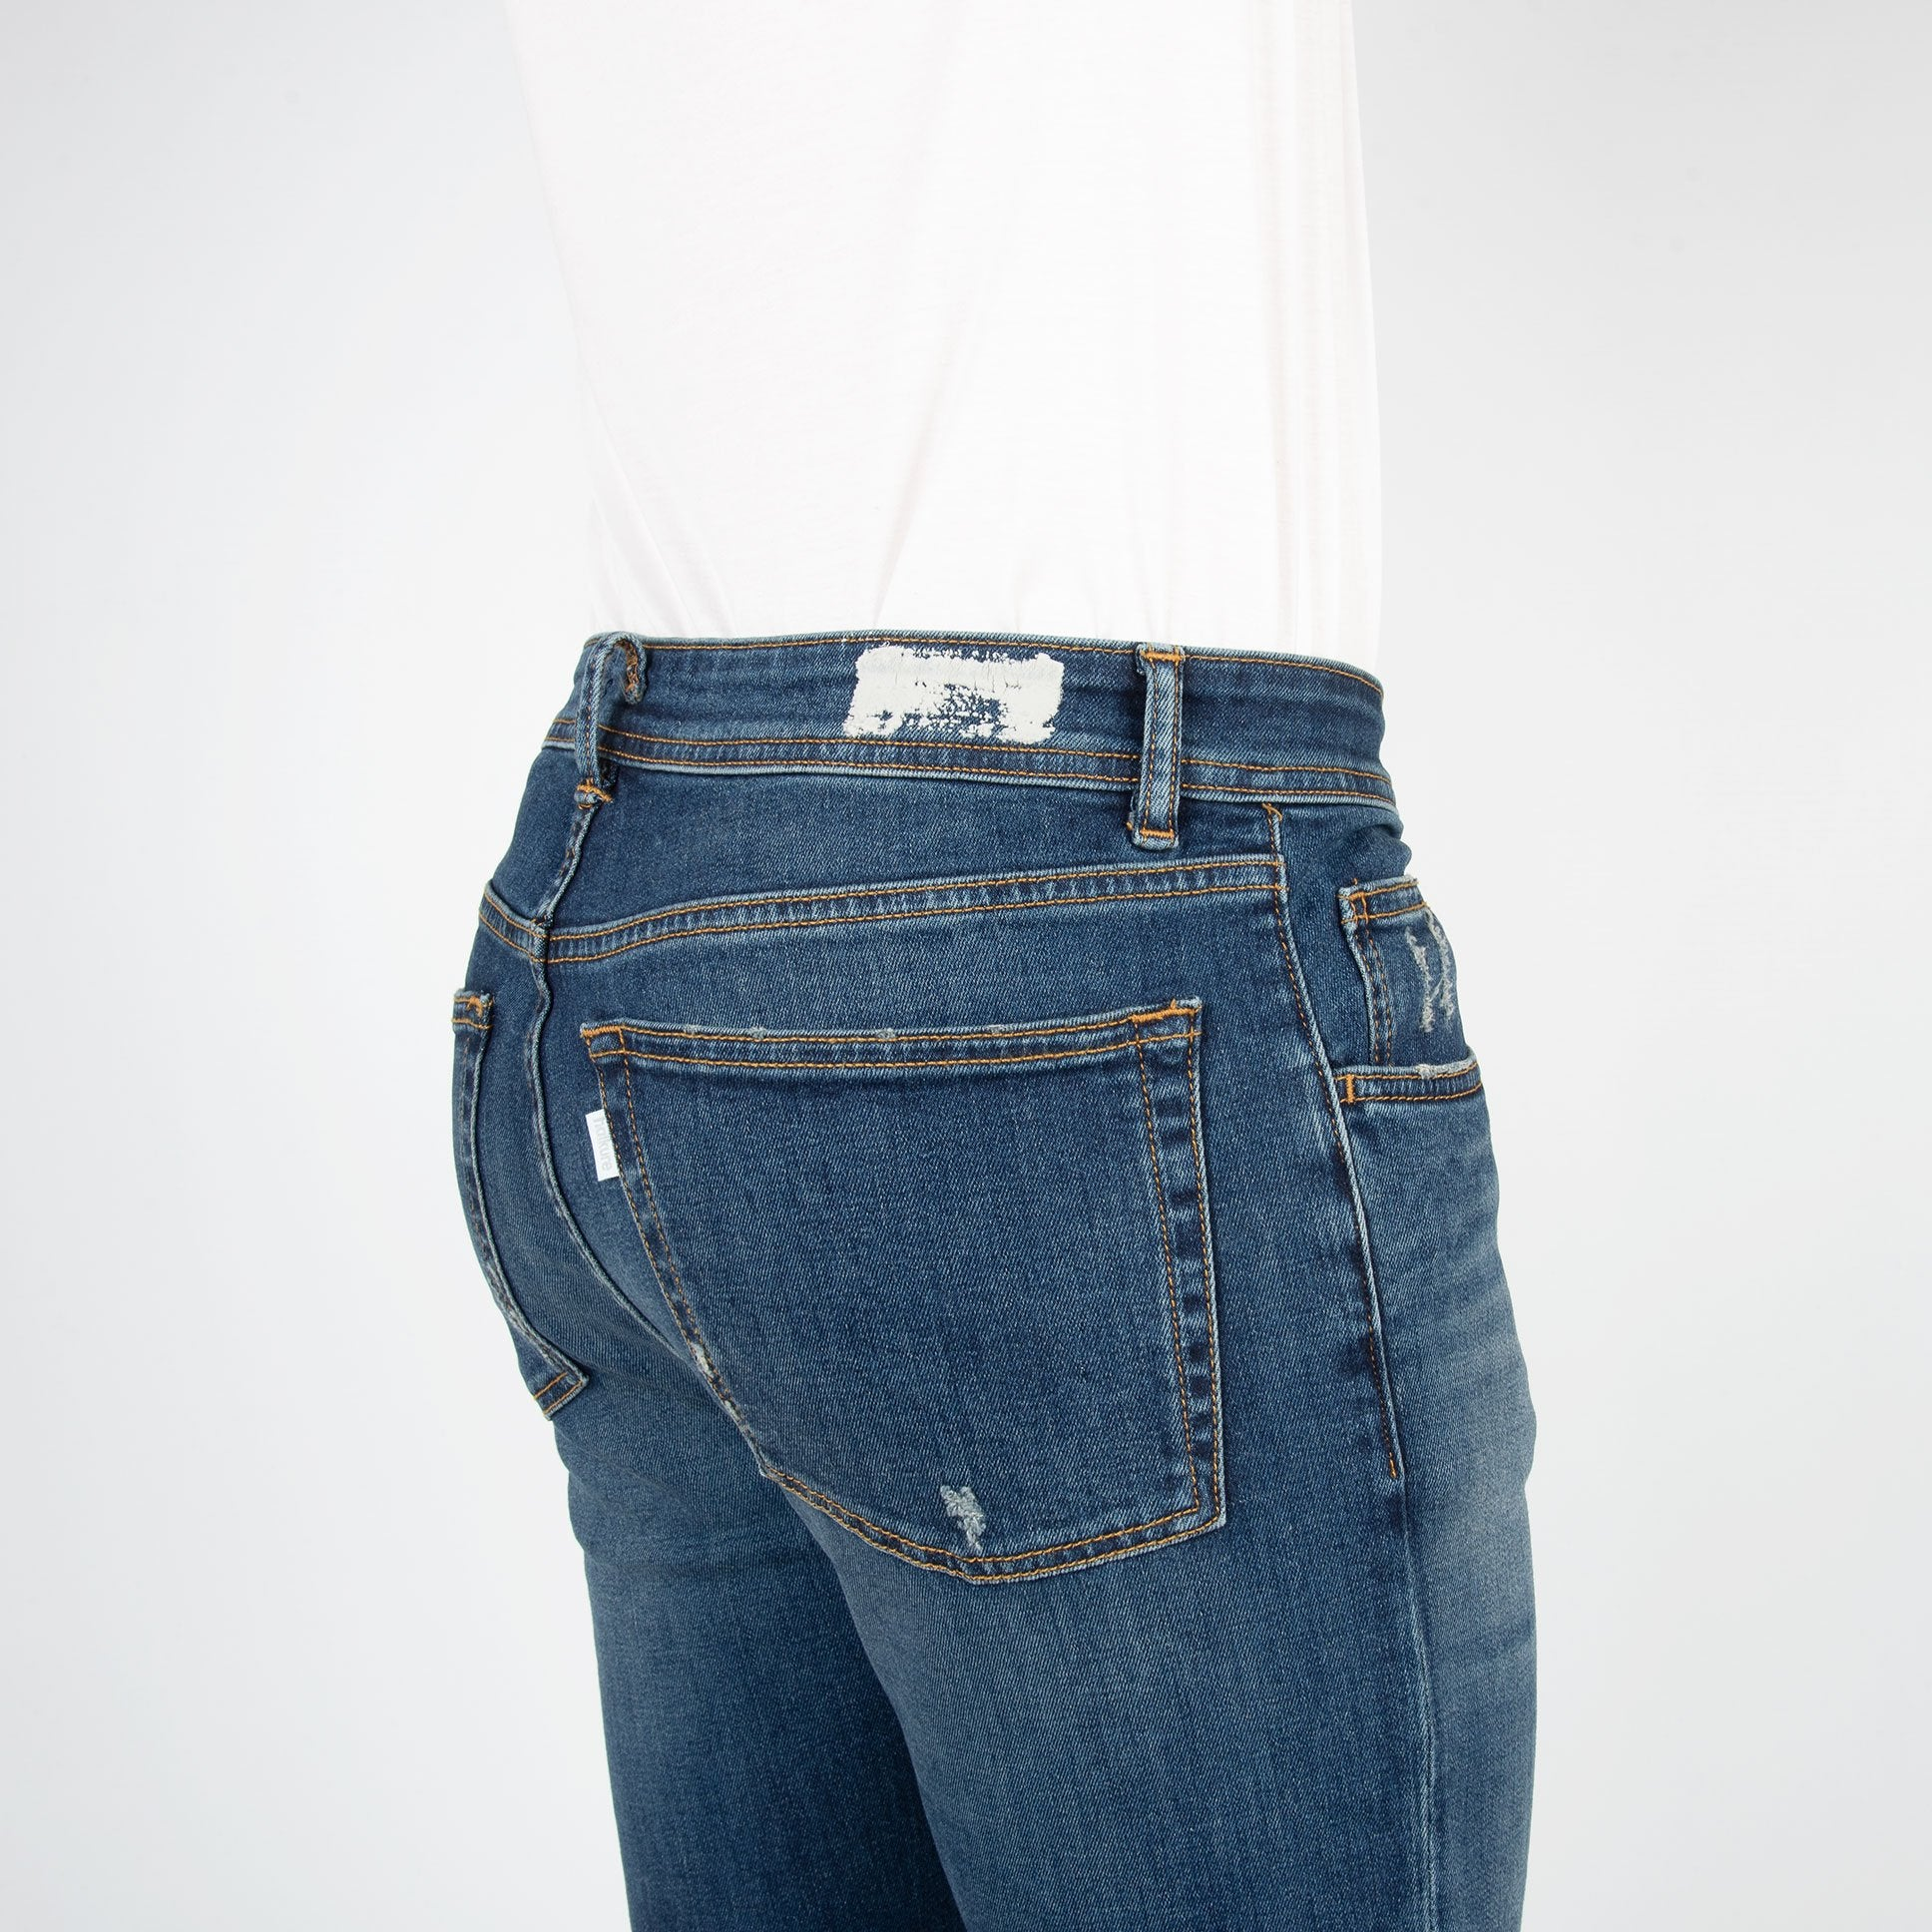 Denim 'Cleveland' - Vintage Scuro